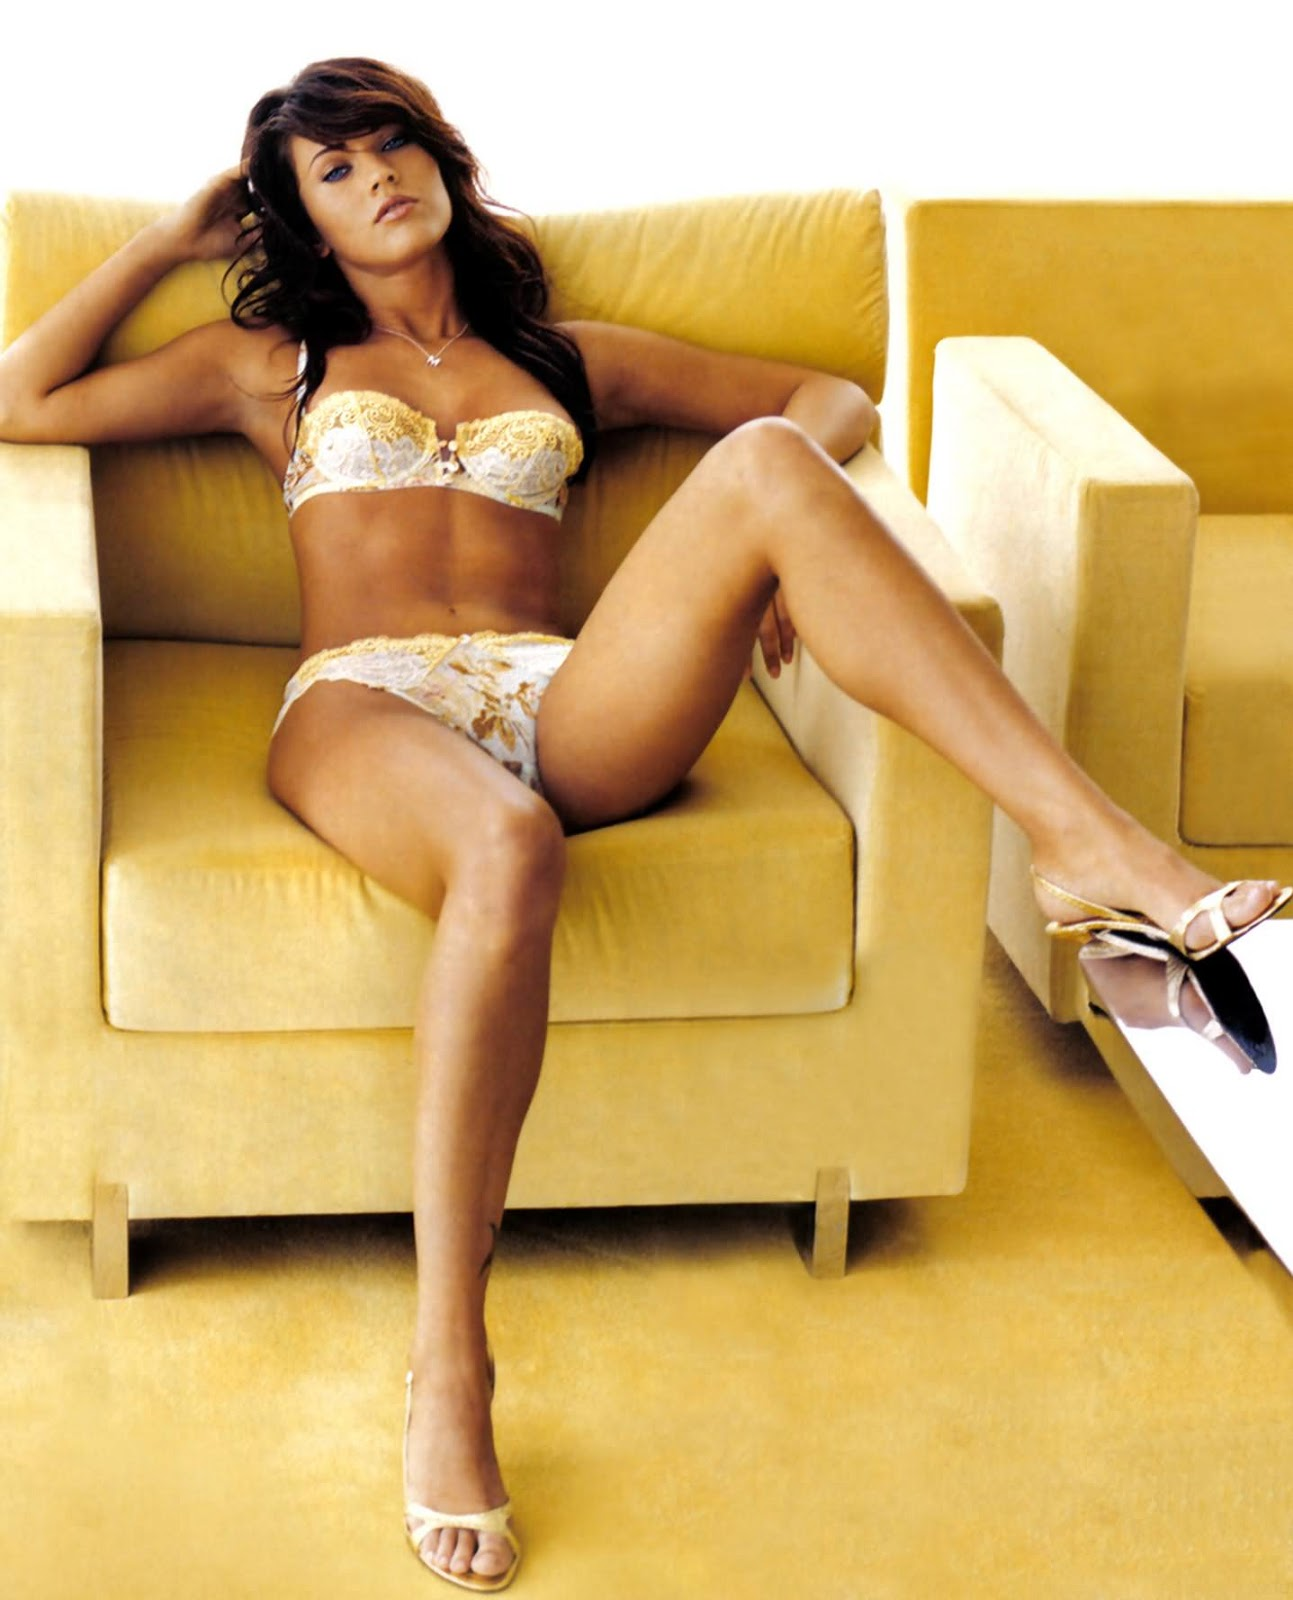 Megan Fox Beautiful New Hot Images 2013 | Its All About Hollywood ...